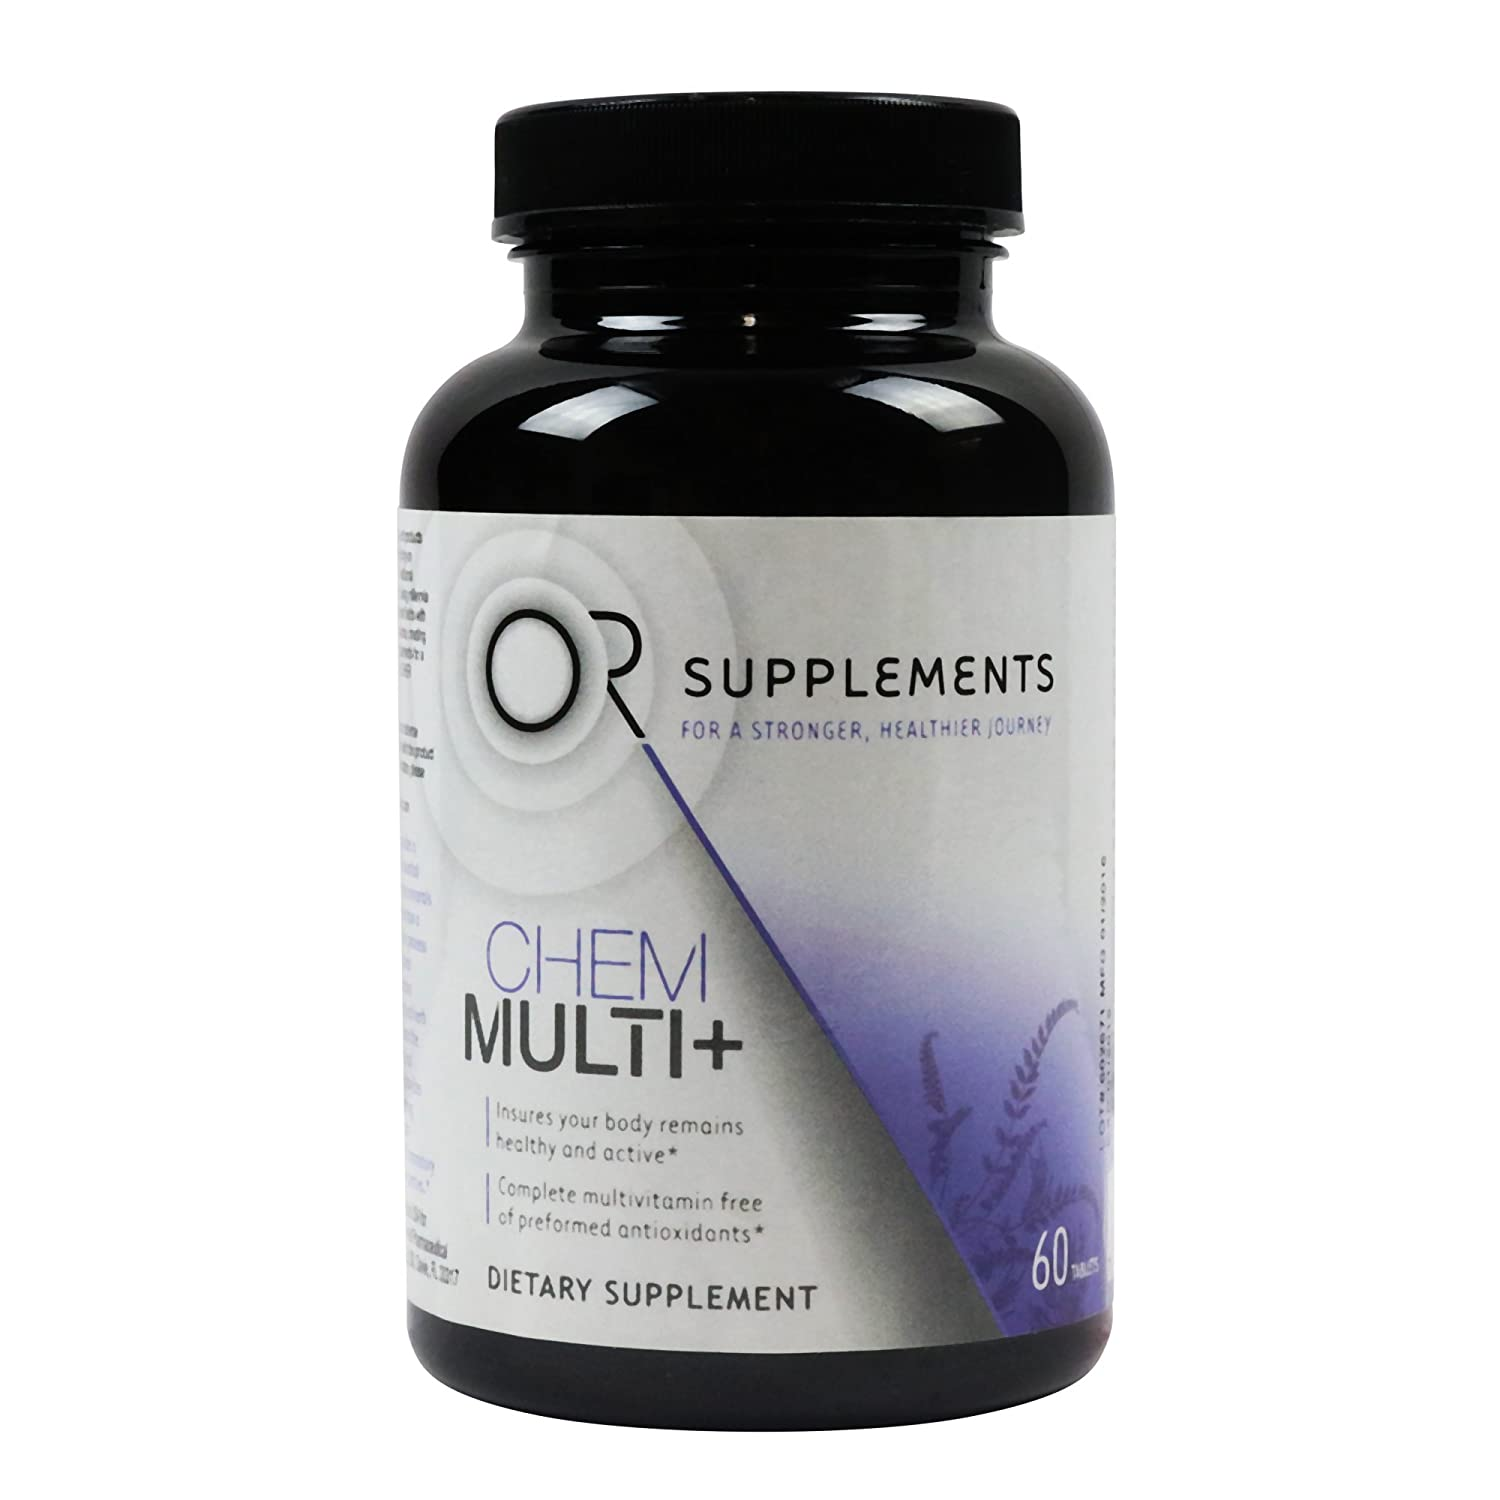 Or Supplements Chem Multi Plus 60 Tablets – Oncologist Developed Multivitamin – Supports the Immune System and Provides Optimal Nutrition Support